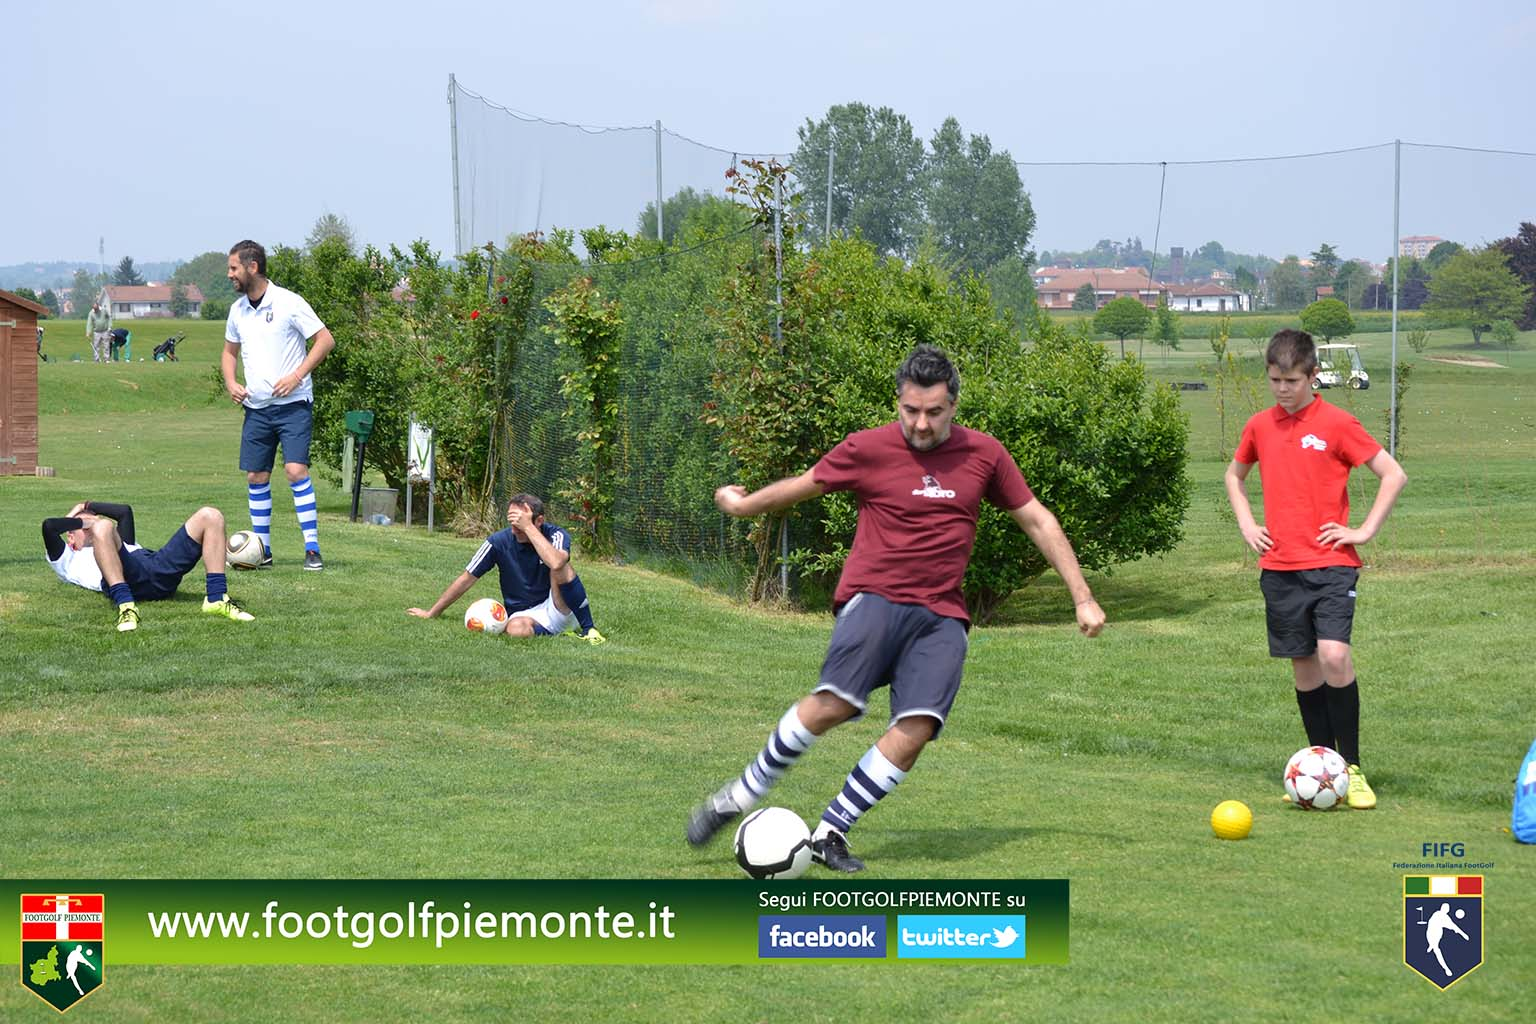 FOTO 9 Regions' Cup Footgolf Piemonte 2016 Golf Città di Asti (At) 30apr16-82